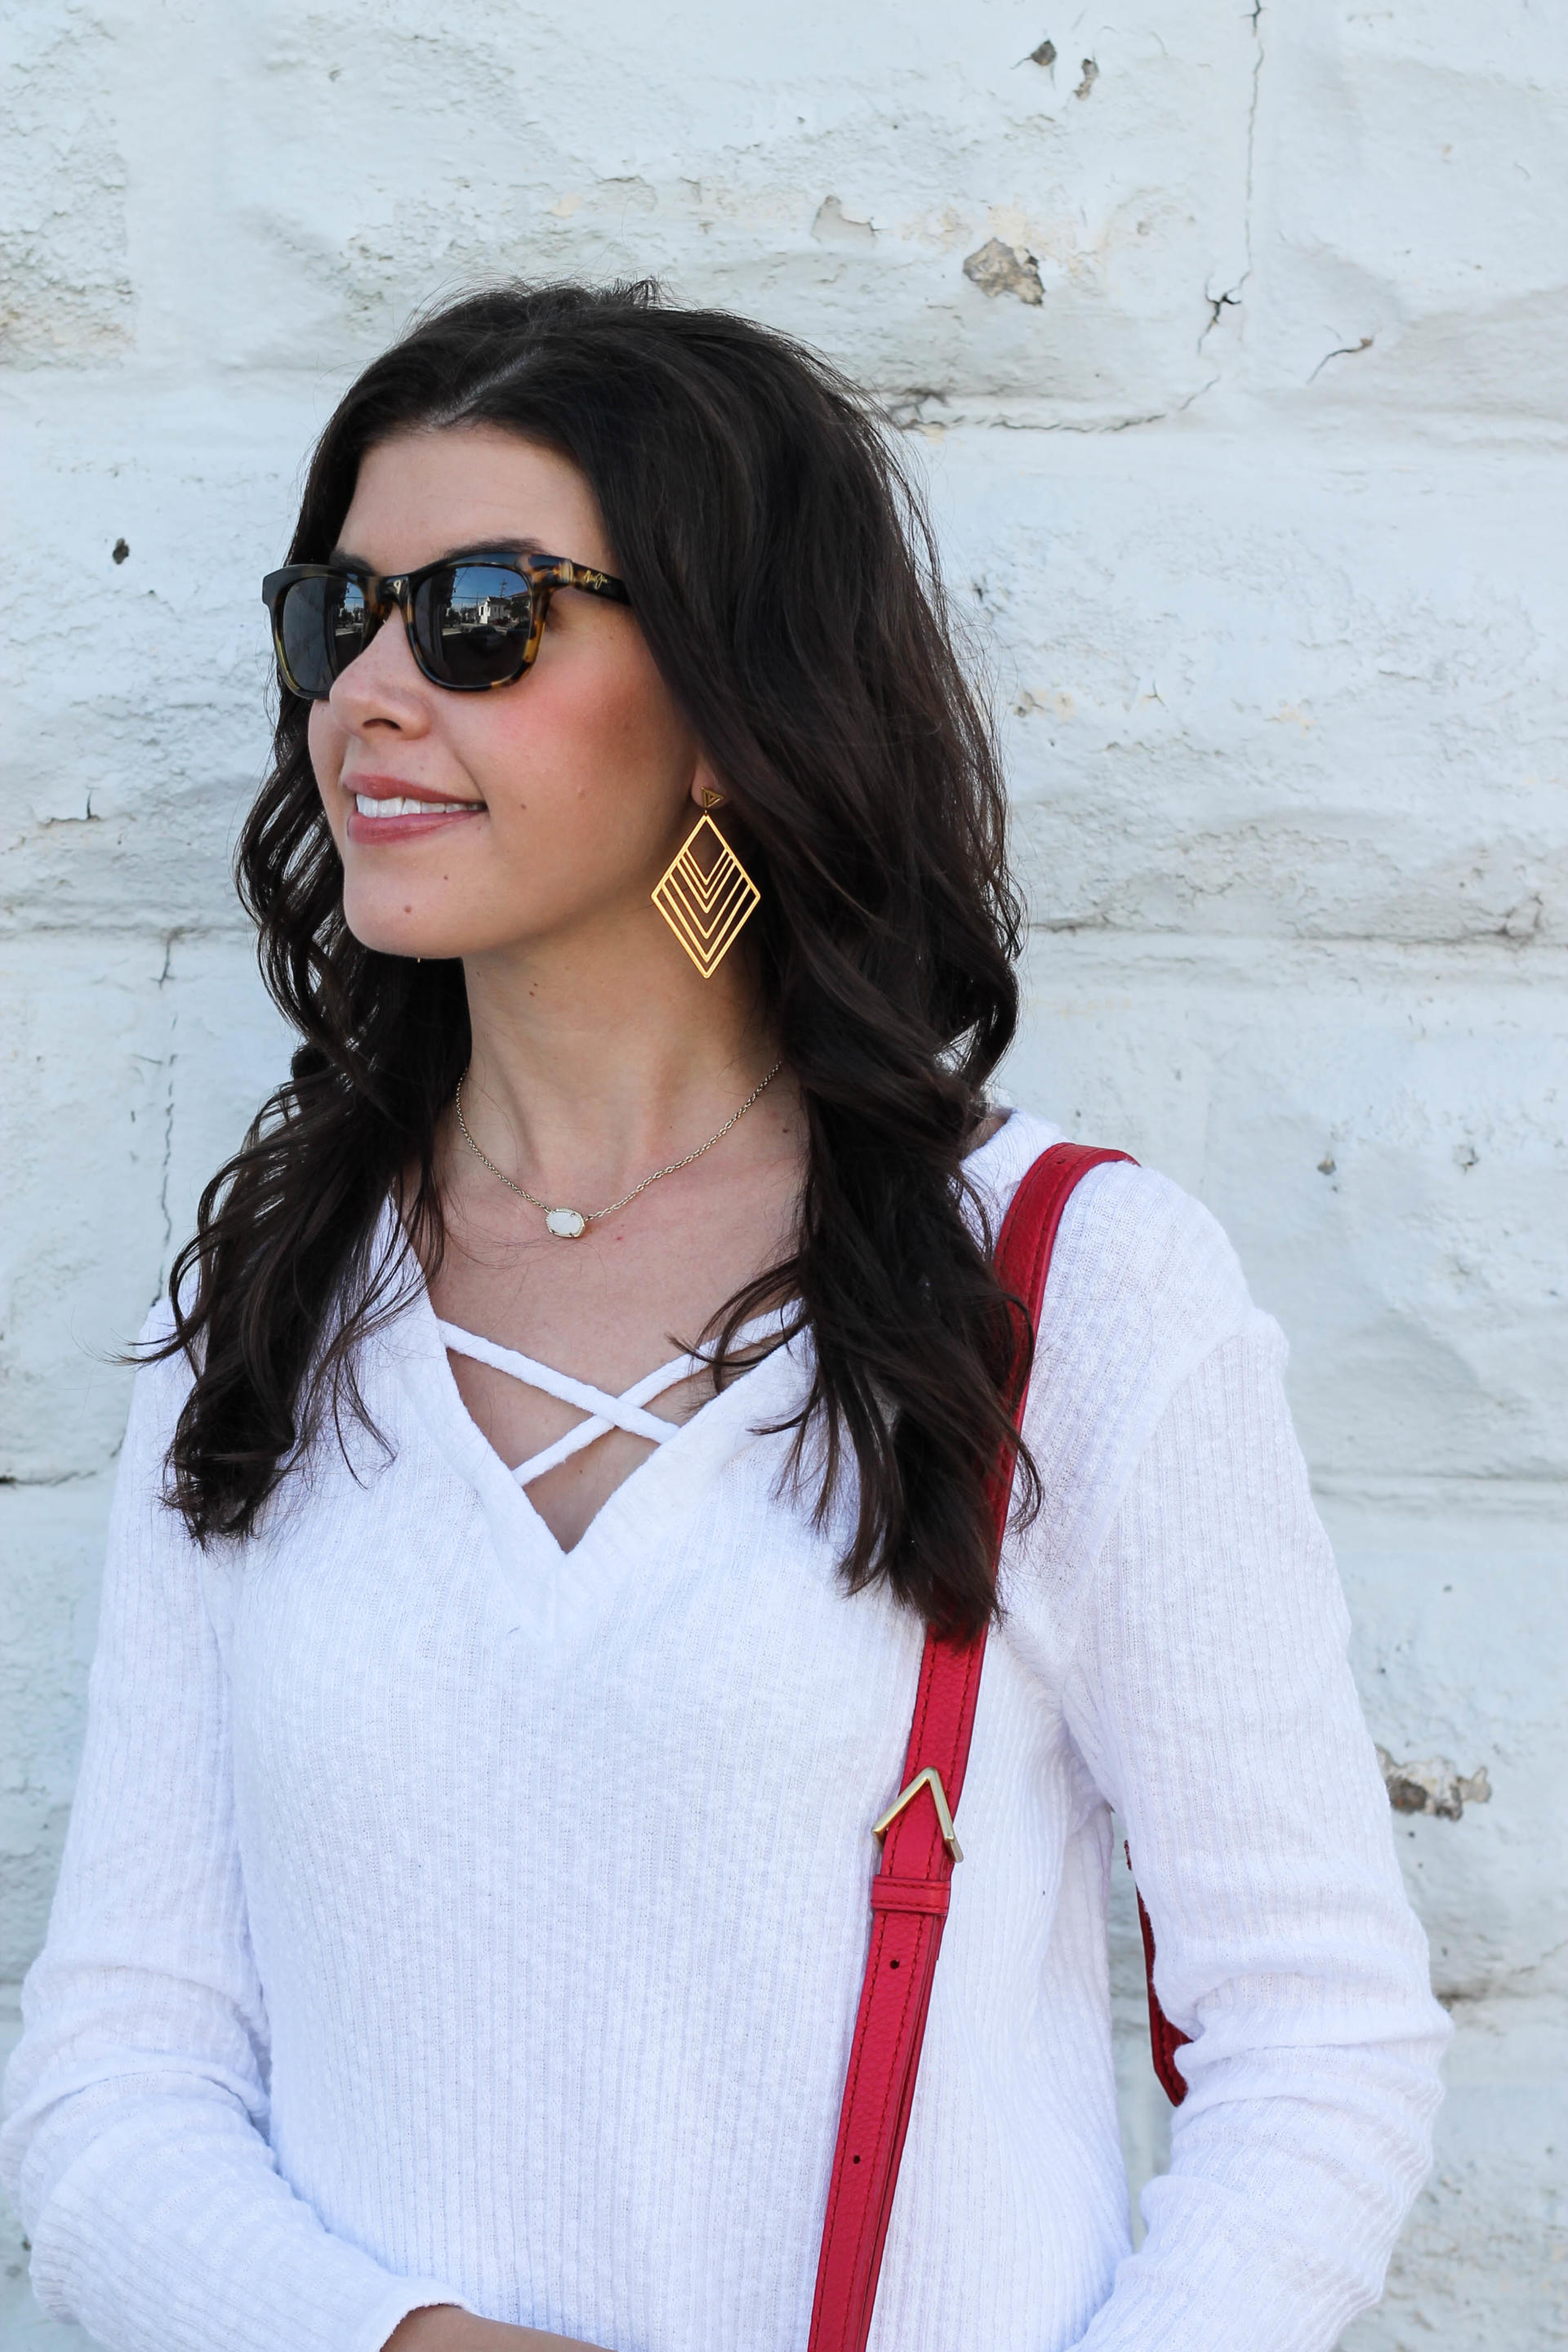 Criss Cross Sweater For Spring